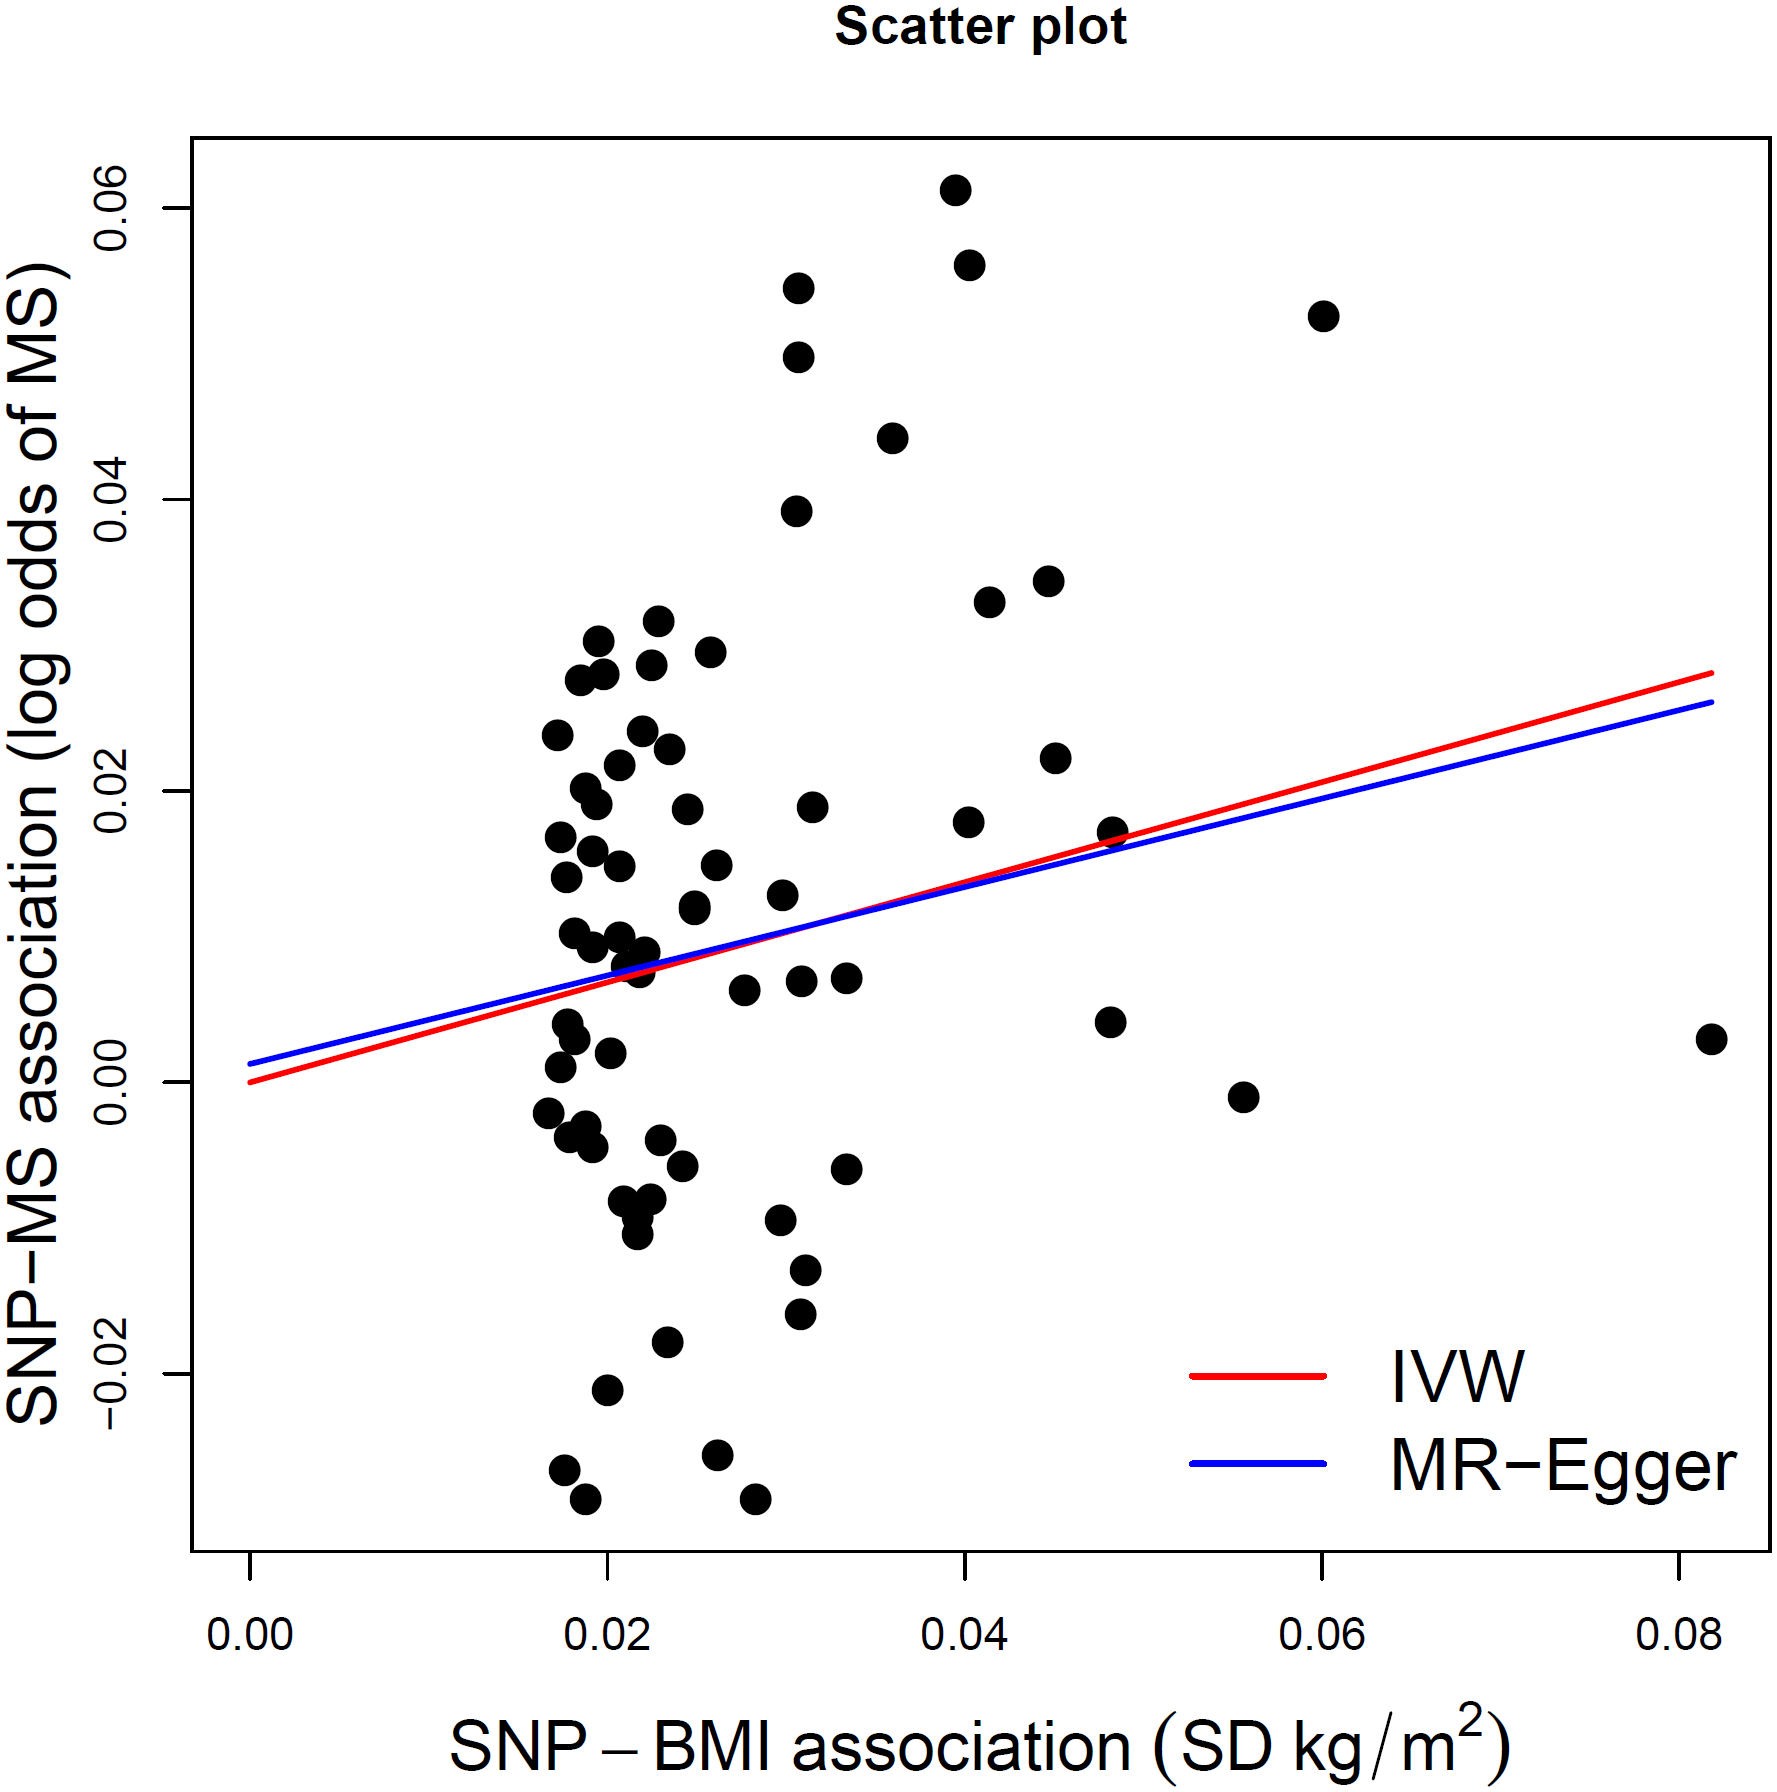 MR-Egger regression scatterplot for BMI on MS analysis.